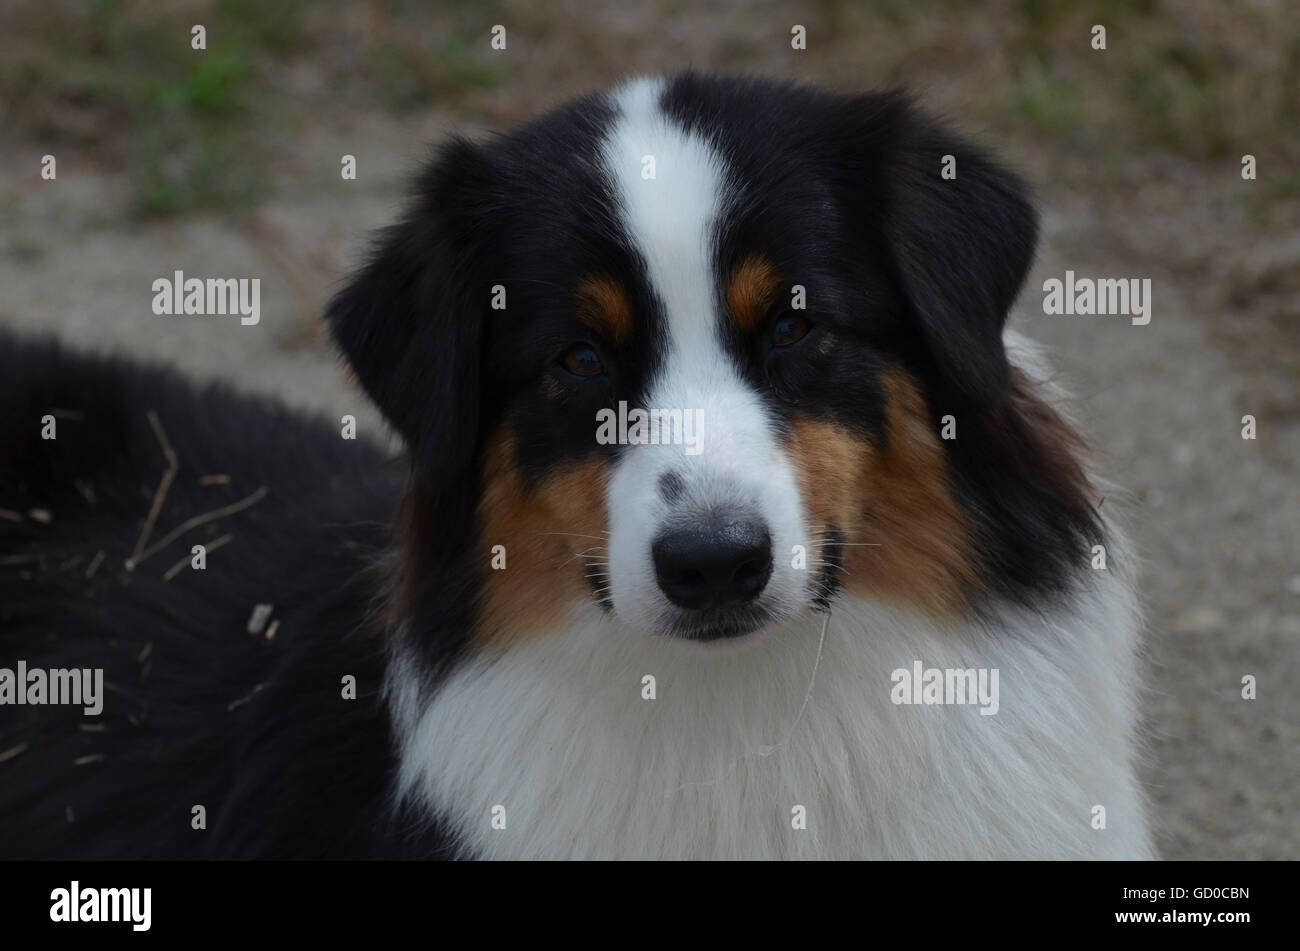 Sweet faced tri-colored Australian Shepherd dog with a sweet face. Stock Photo